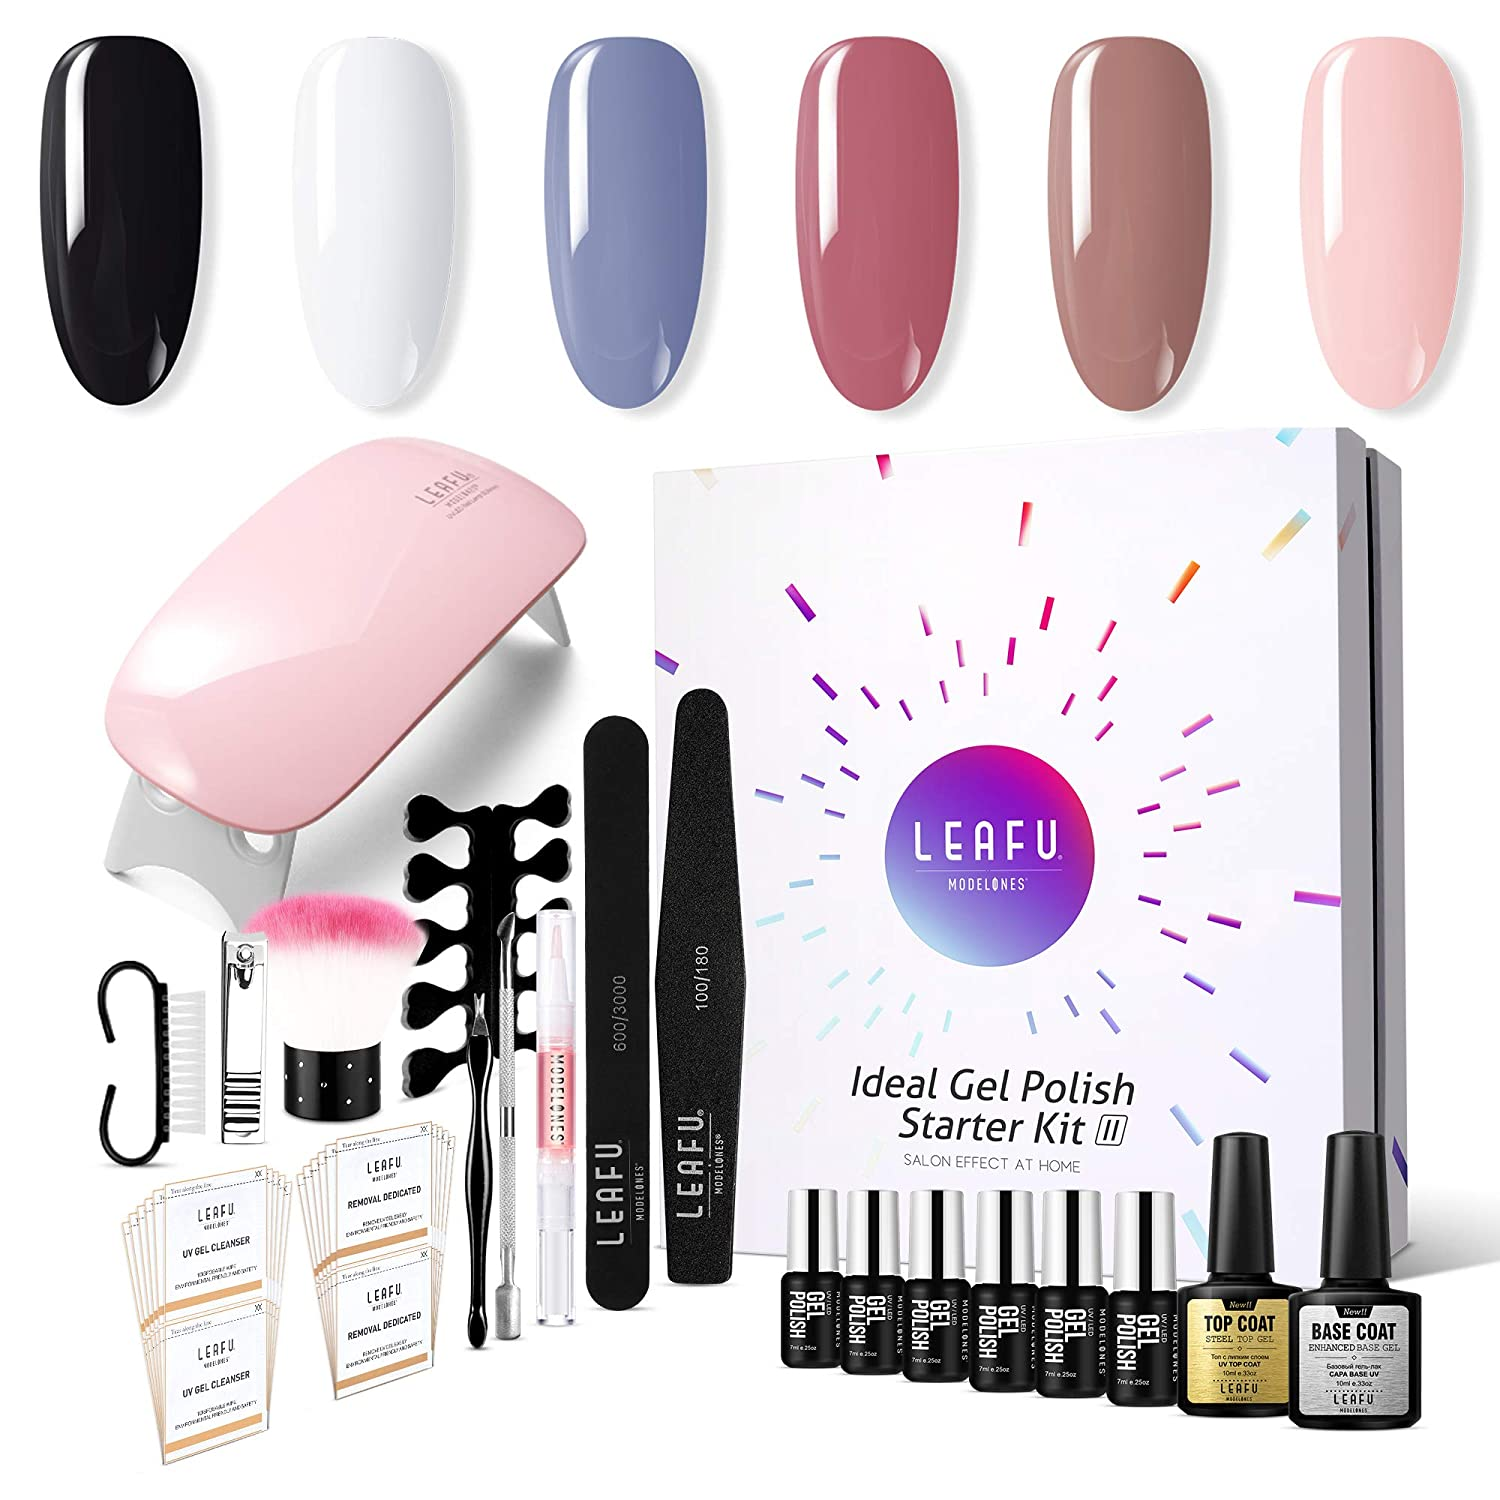 Gel Nail Polish Kit With Uv Light   Soak Off Gel Base Top Coat 6 W Nail Lamp Portable Kit 6 Classic Colors By Modelones by Modelones